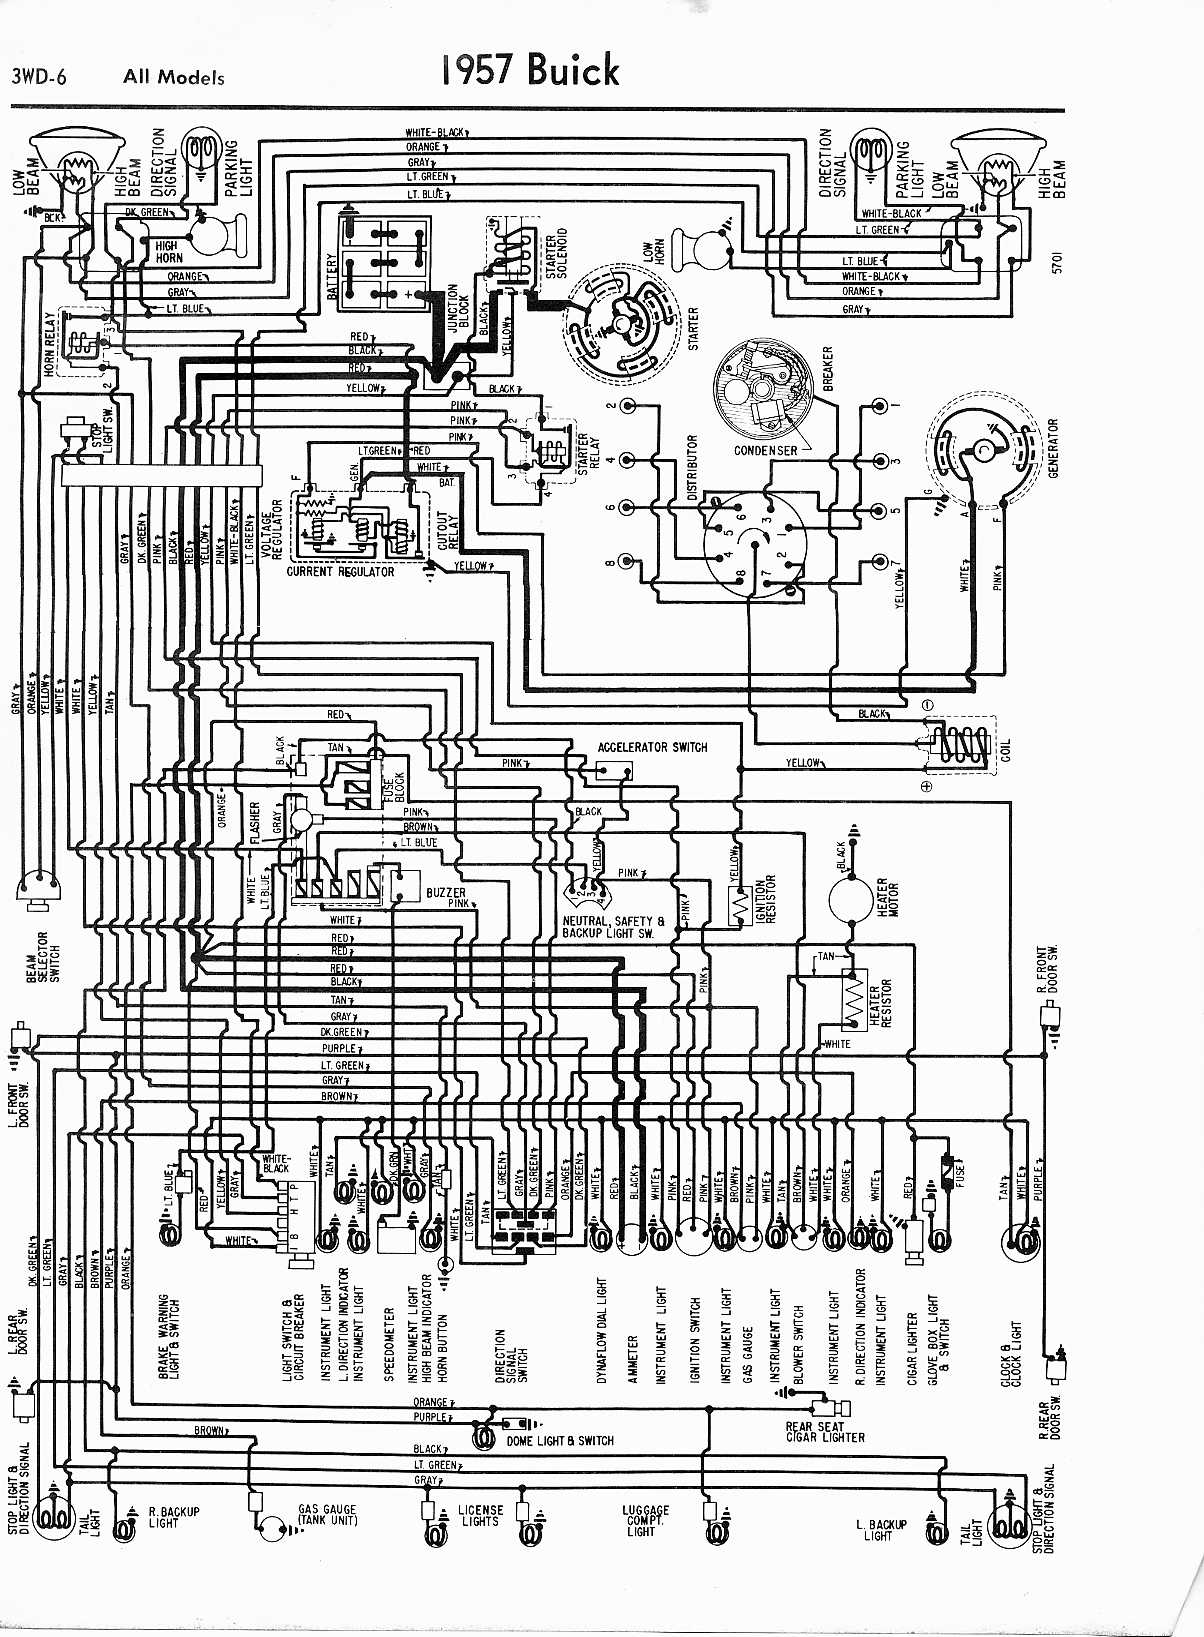 Motor Starter Wiring On 2003 Mini Cooper - Free Wiring Diagram For on cooling fan starter, cooling fan connector, cooling fan repair, cooling fan radiator, cooling fan tools, cooling fan clutch, cooling fan heater, cooling system, cooling fan thermostat, 3 position light switch diagram, cooling fan coil, 1997 honda civic cooling fan diagram, ac motor speed control circuit diagram, cooling fan controls, engine diagram, cooling fan circuit breaker, cooling fan harness diagram, cooling fan assembly, cooling fan relay, cooling tower diagram,